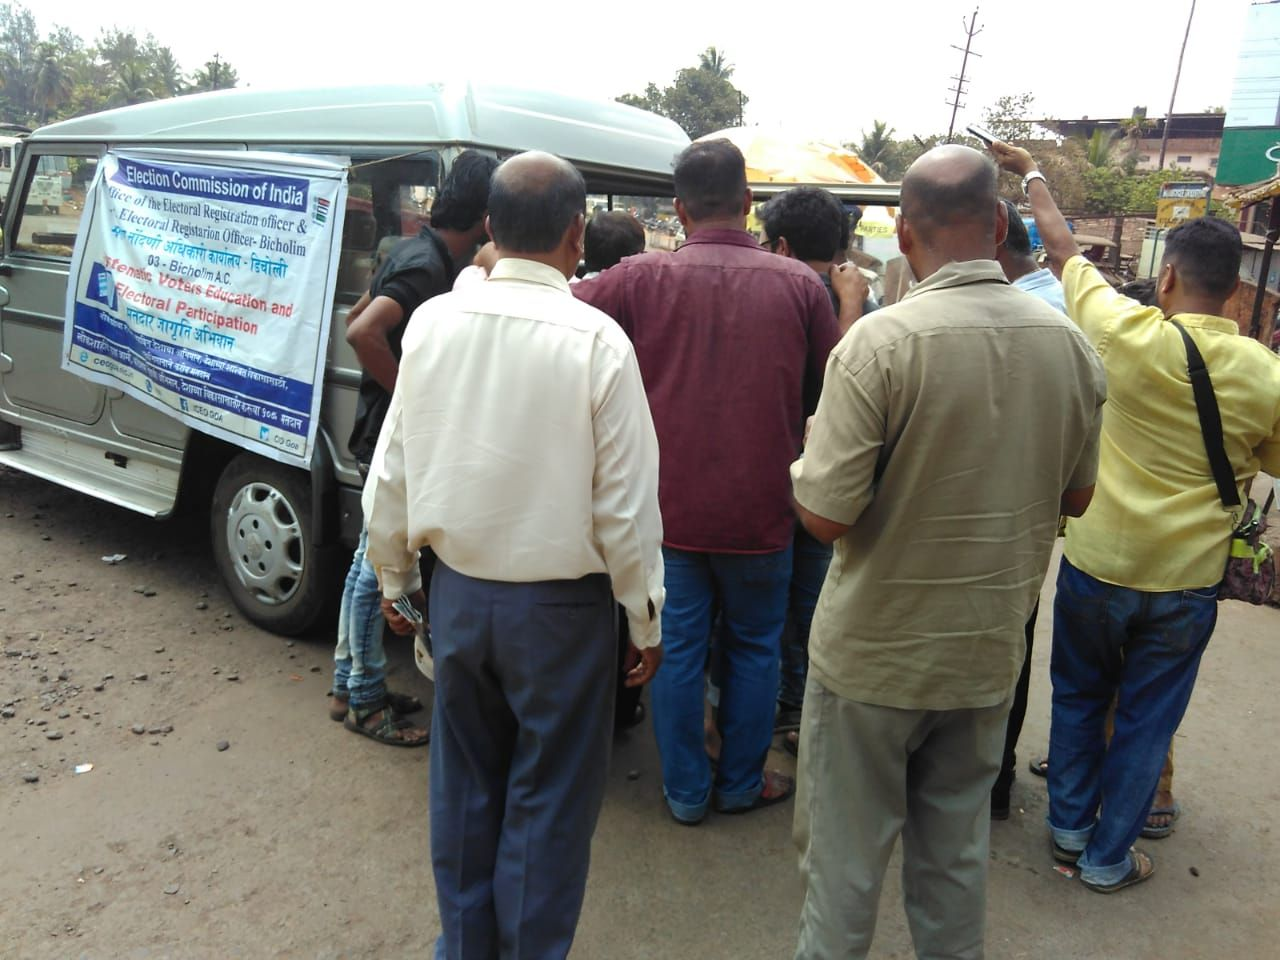 EVM/VVPAT demonstration and Voter Awarness (Ethical voting) along with Rickshaw Drivers Motorcycle Pilots at Bicholim Bus Stand.